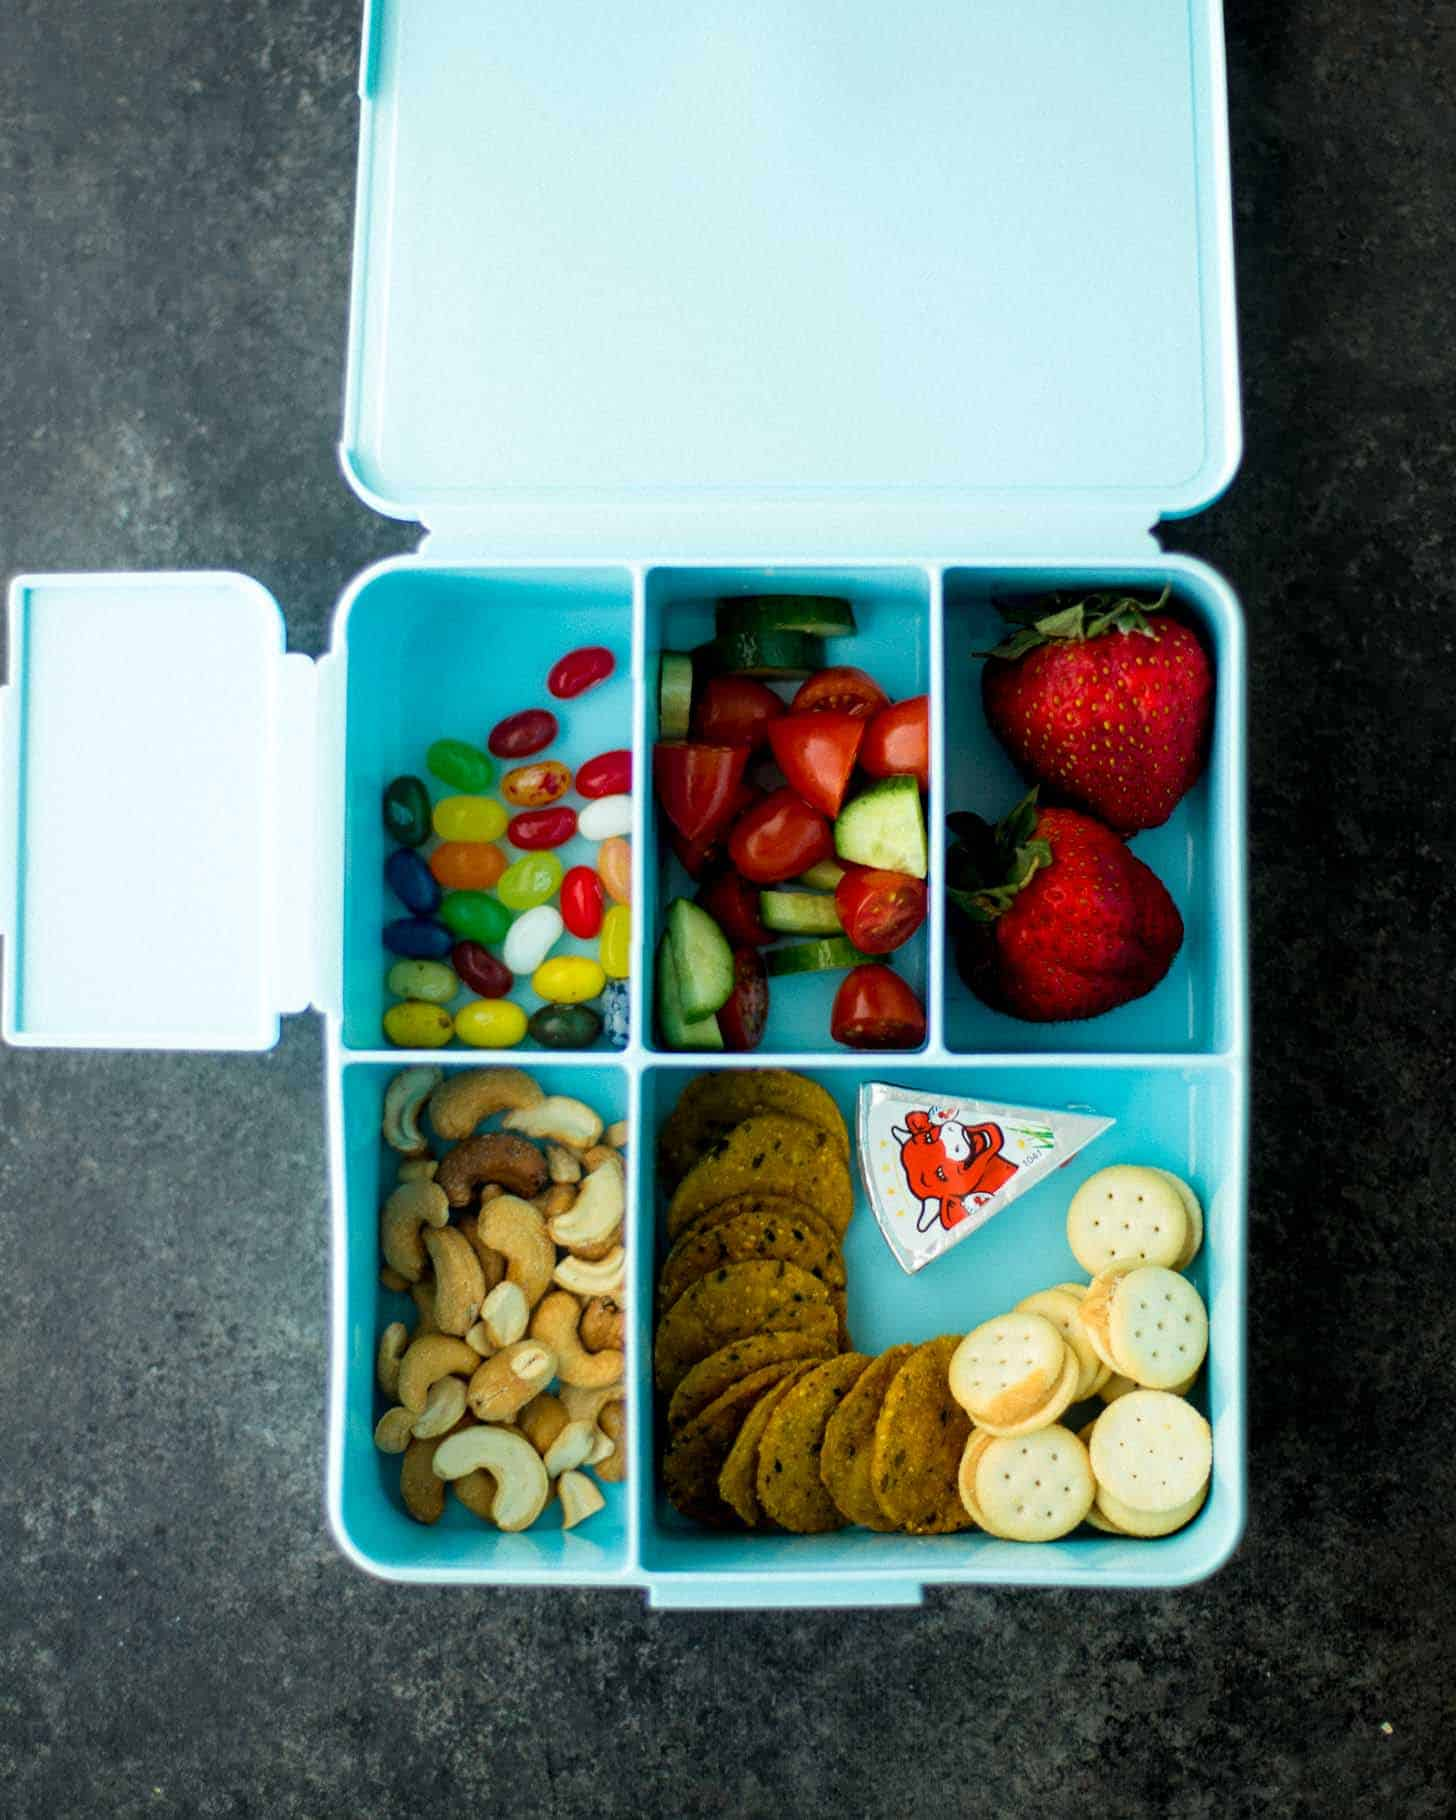 Pottery Barn Spencer Lunch Box packed with Bento lunch